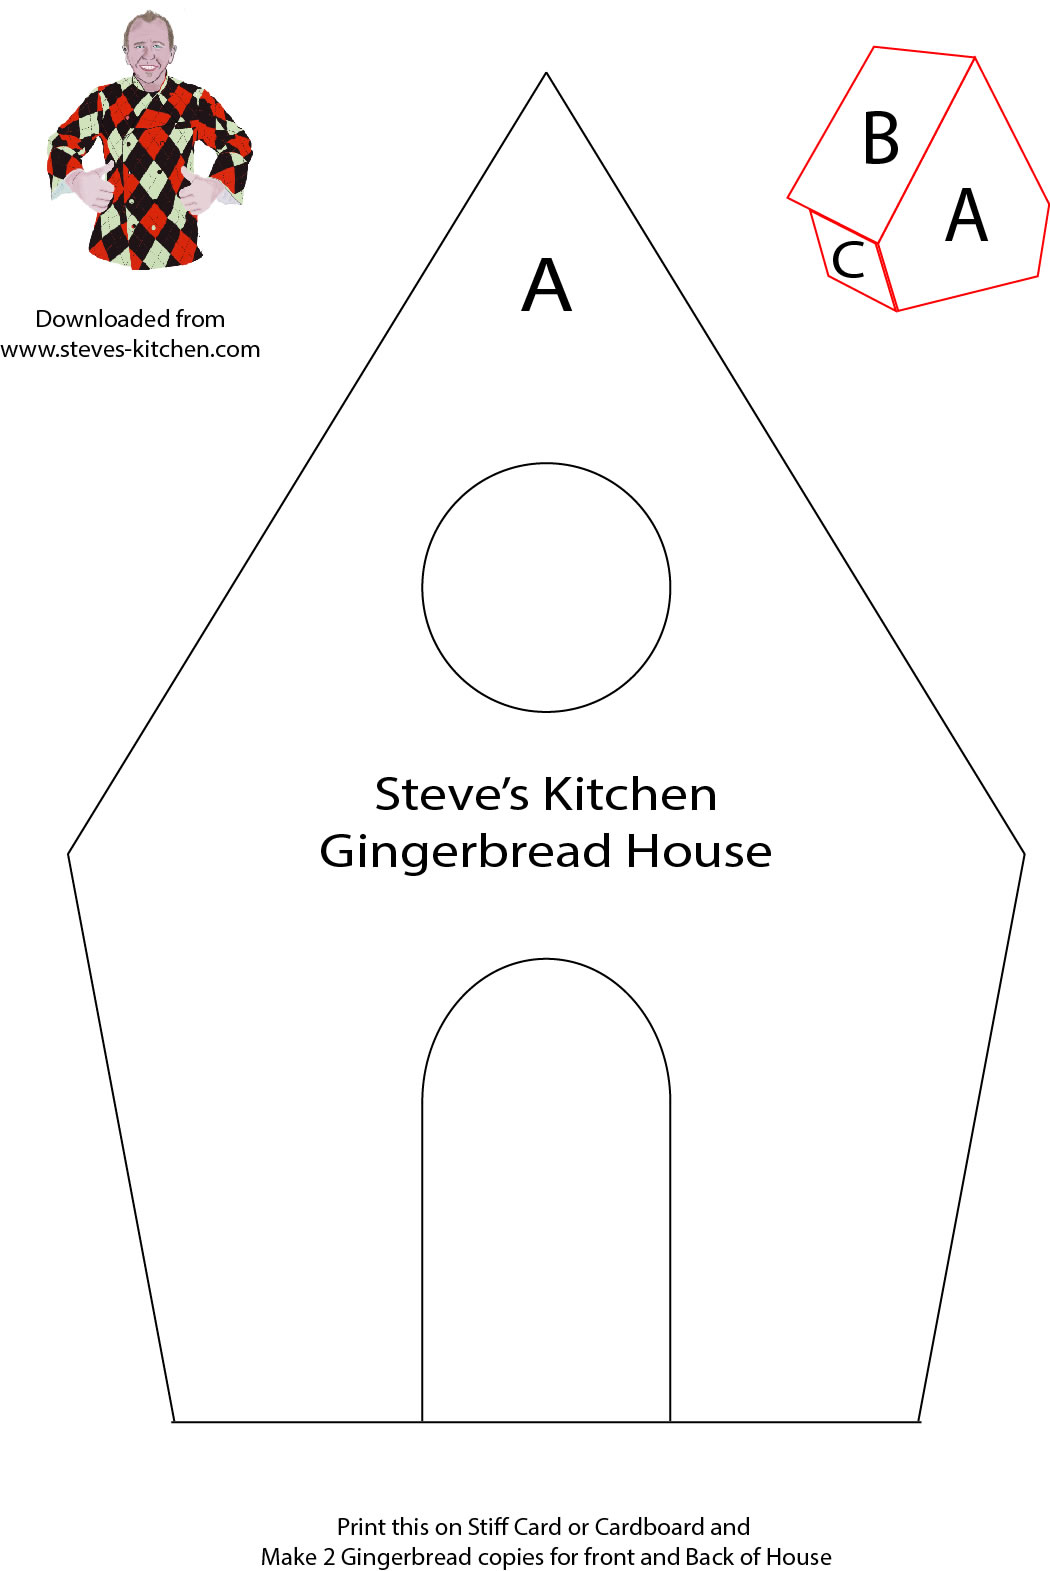 Adaptable image intended for printable gingerbread house patterns